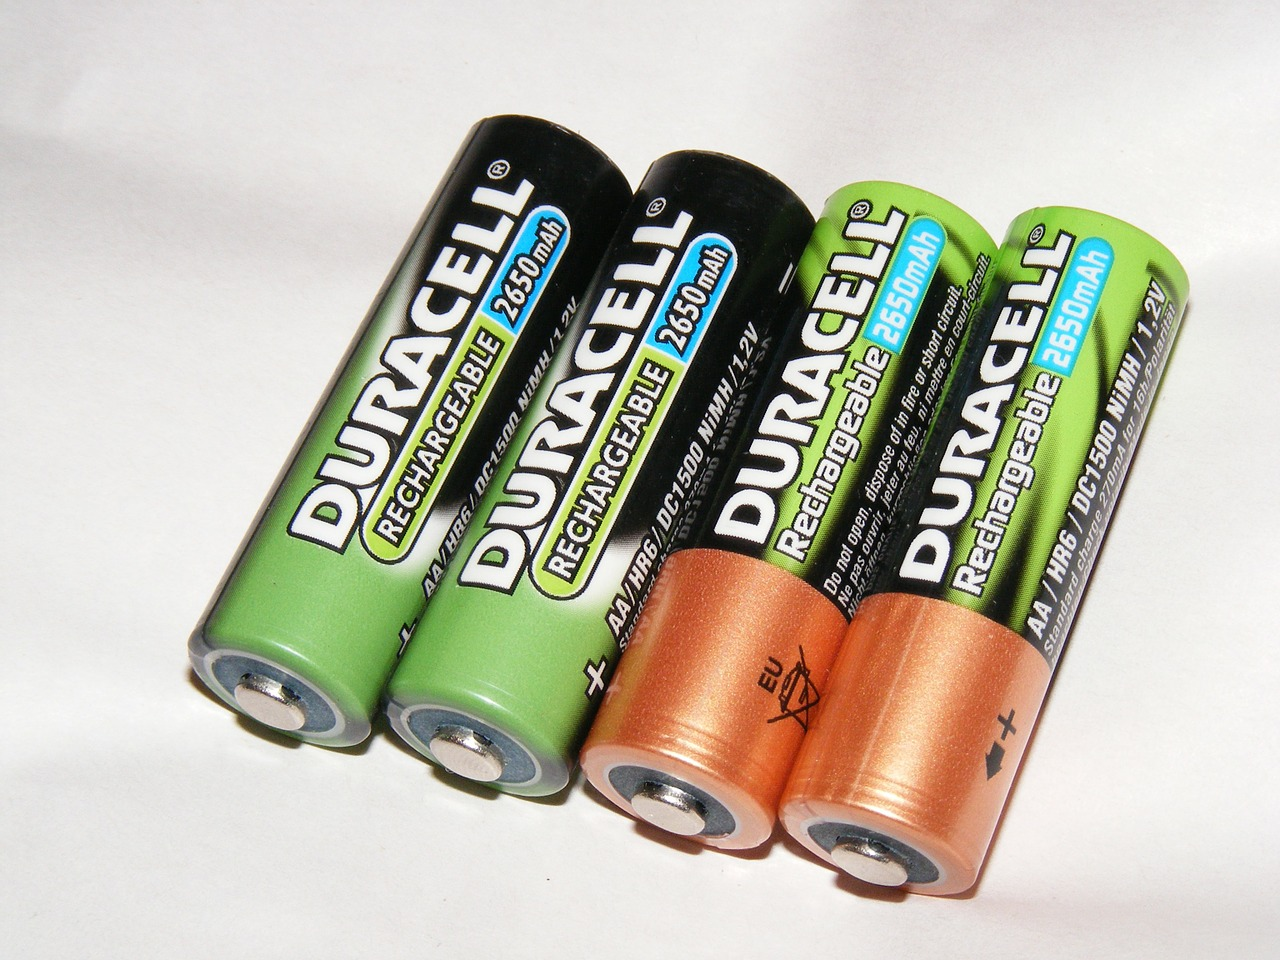 some aa batteries image from pixabay